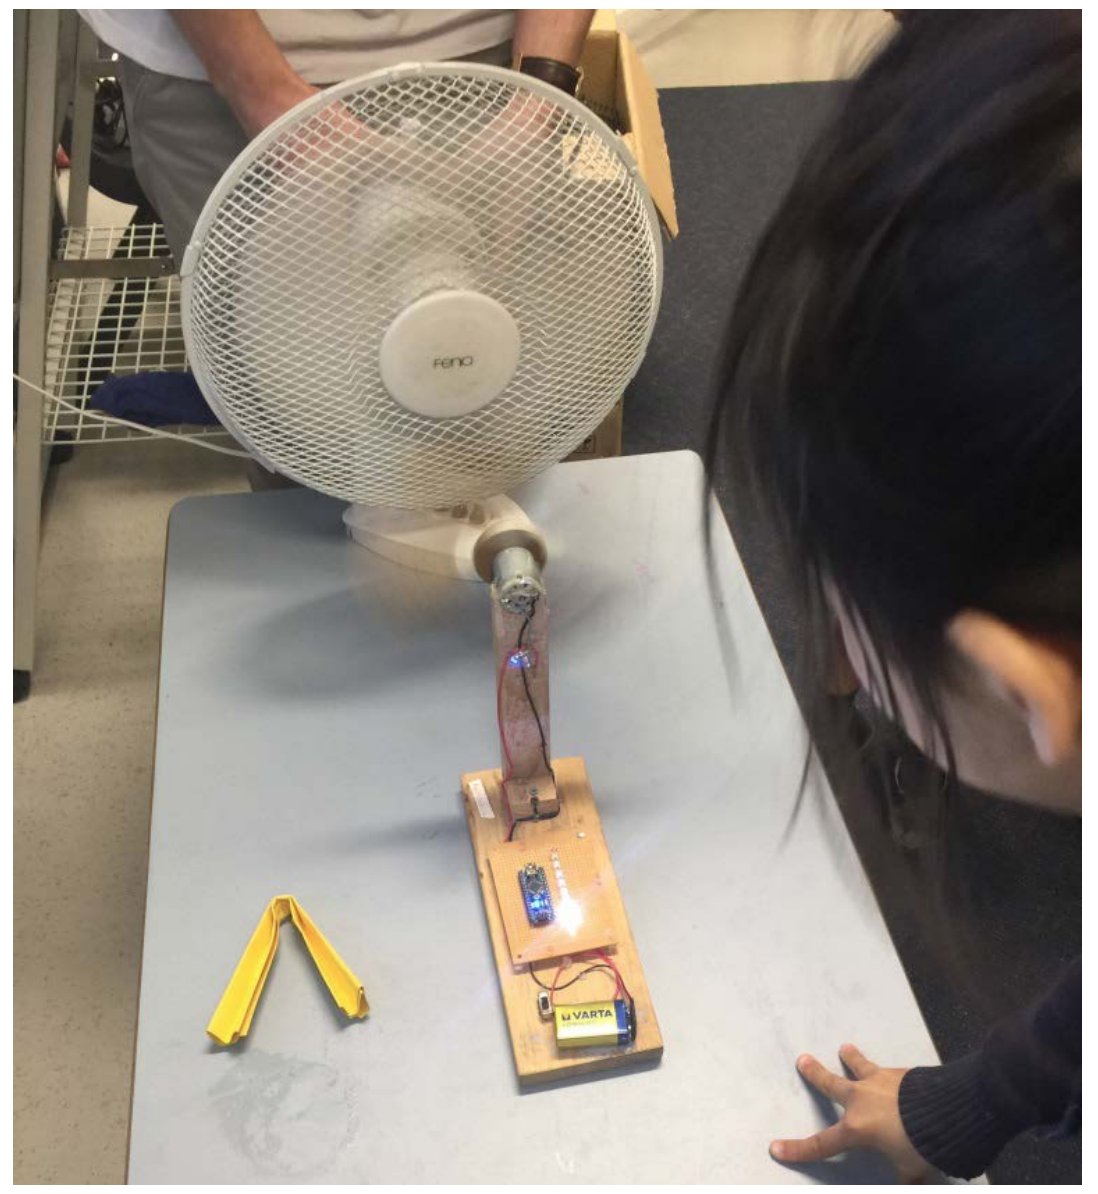 Students creating an invention that involves fan power.